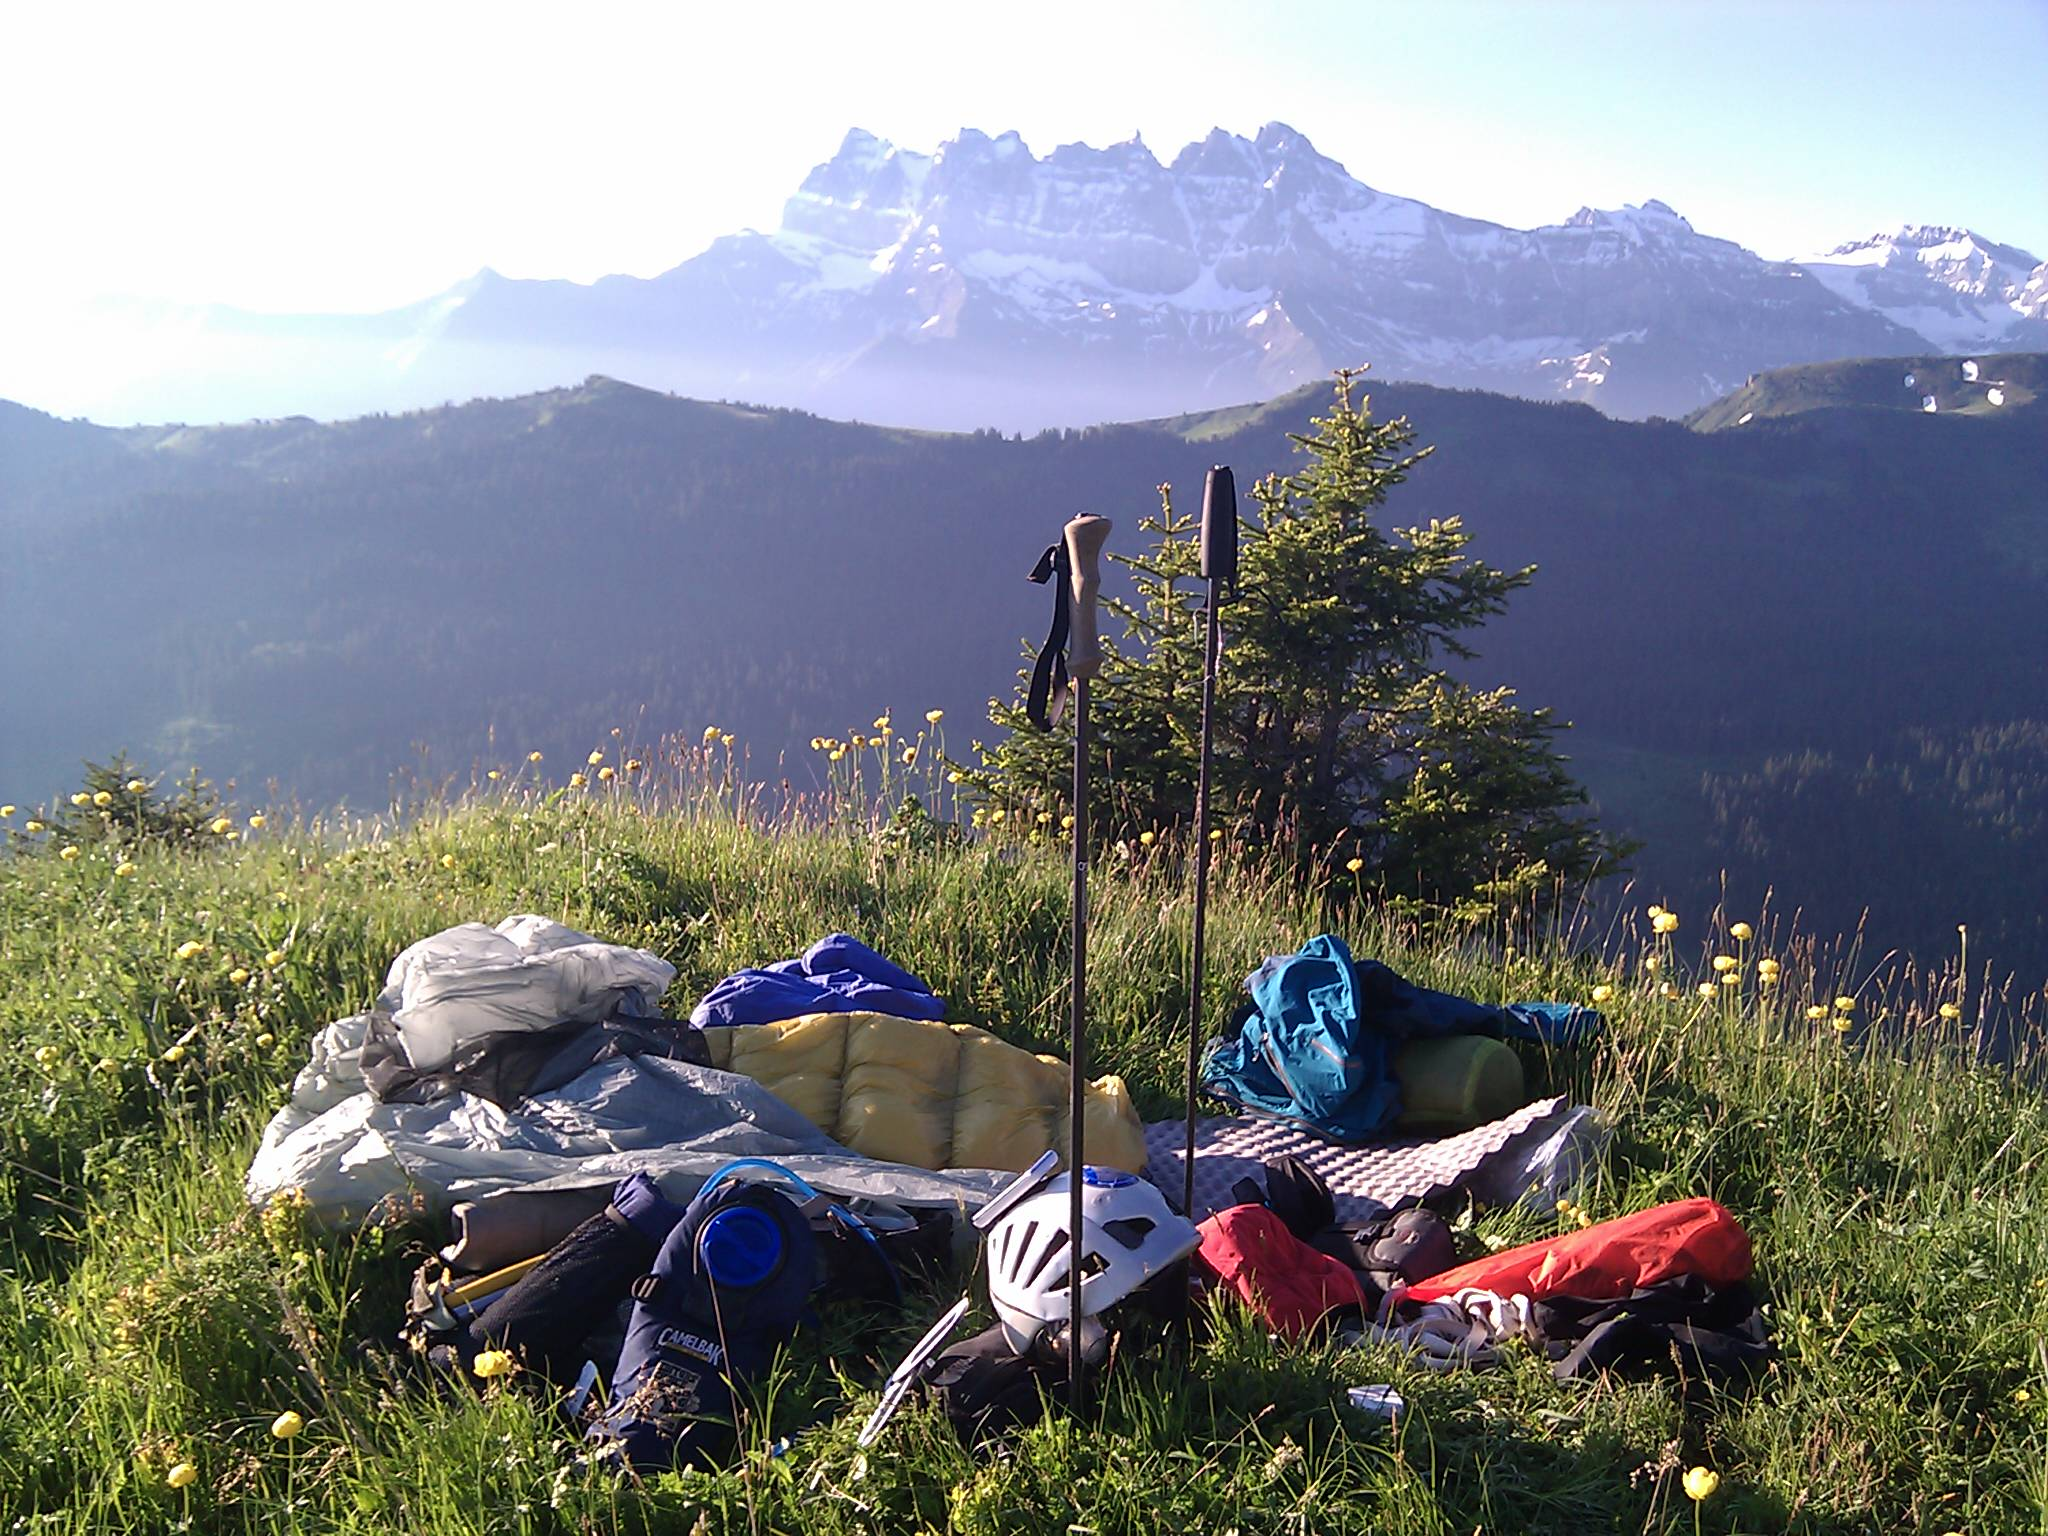 Where I woke up this morning. Les Dents du Midi. Just stunning...